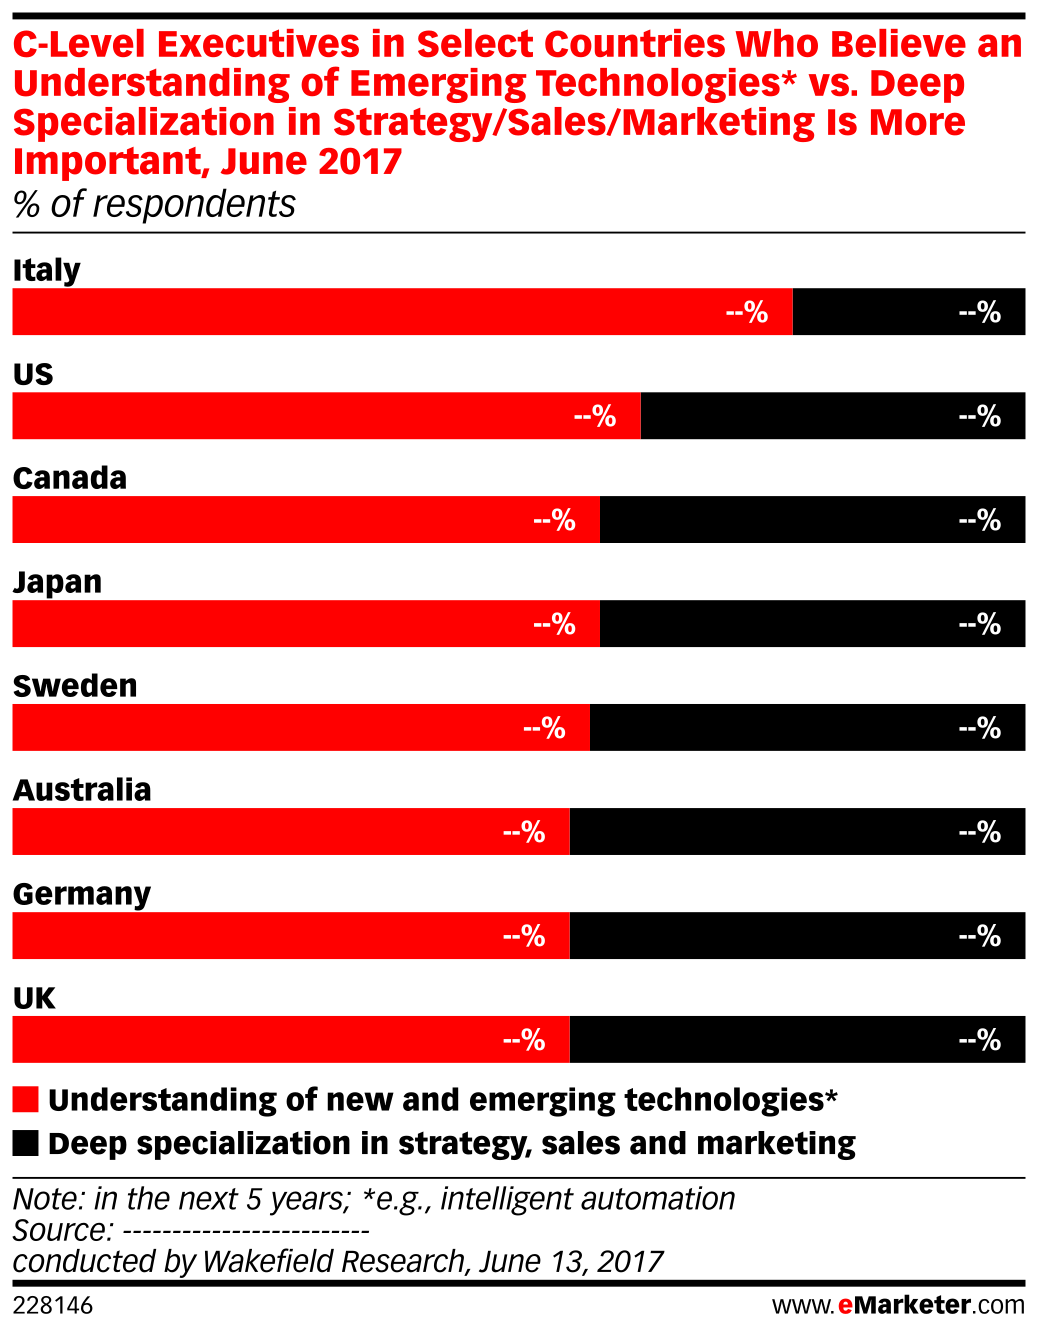 C-Level Executives in Select Countries Who Believe an Understanding of Emerging Technologies* vs. Deep Specialization in Strategy/Sales/Marketing Is More Important, June 2017 (% of respondents)